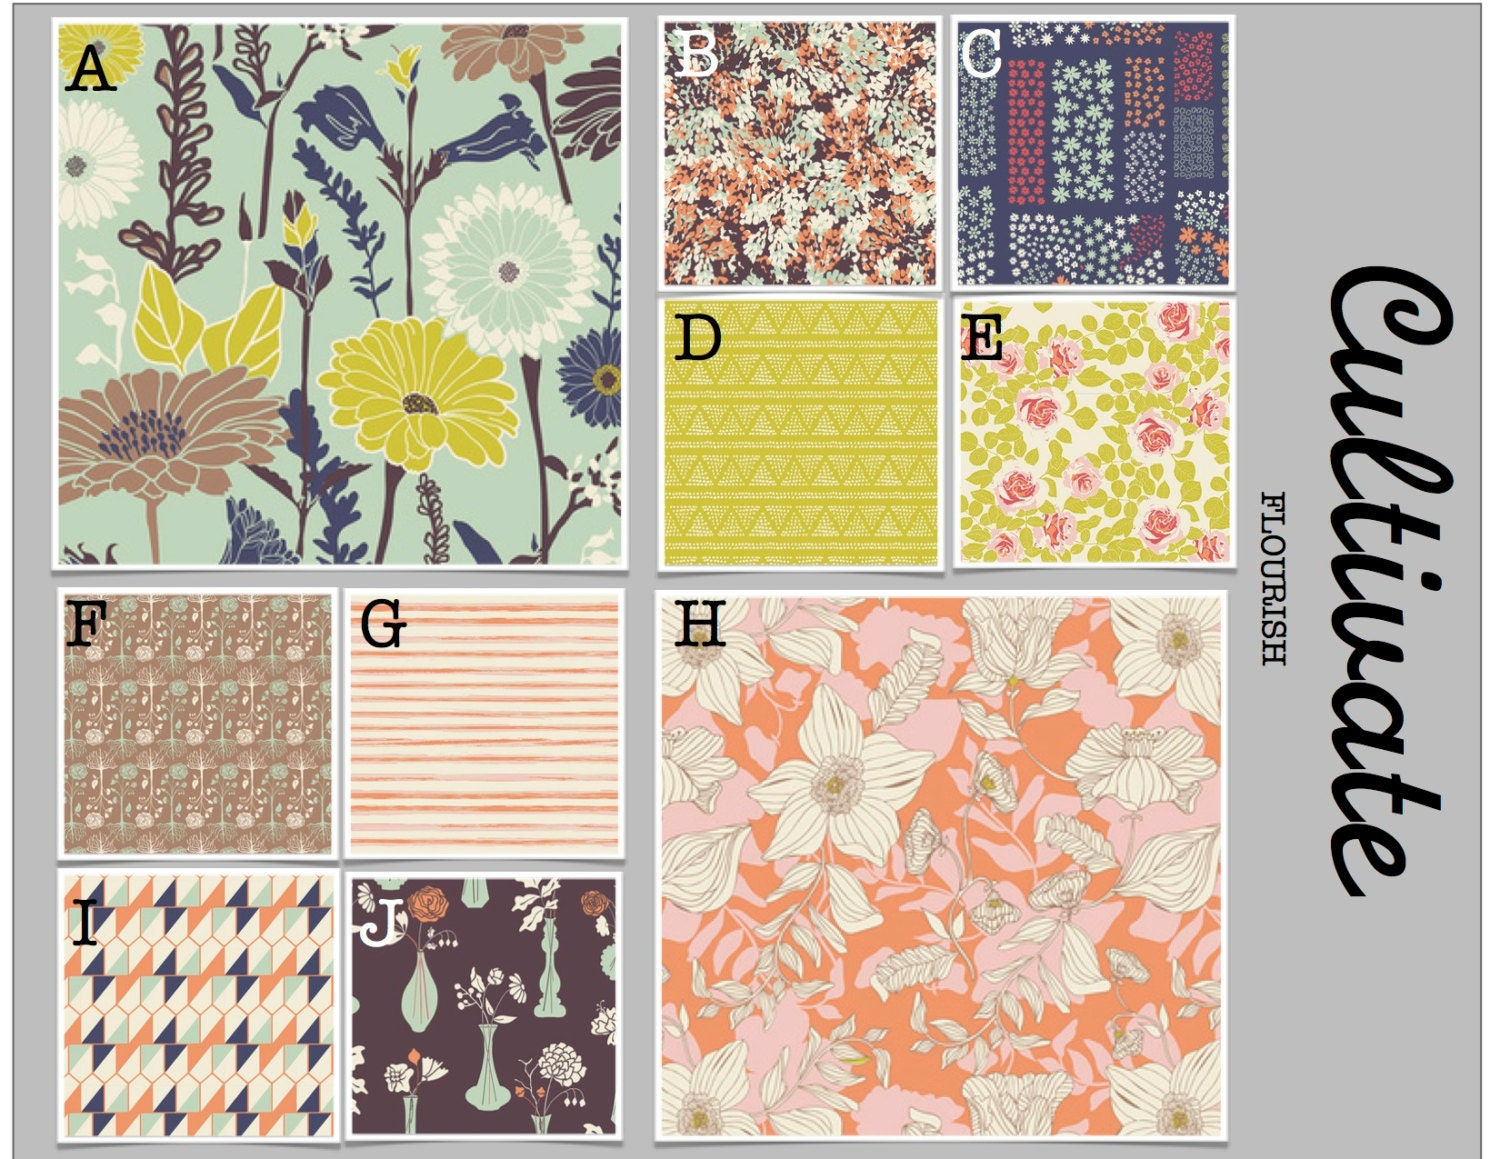 final design of your own baby bedding | Crib Bedding Design Your Own Bedding/ Dorm Bedding Cultivate